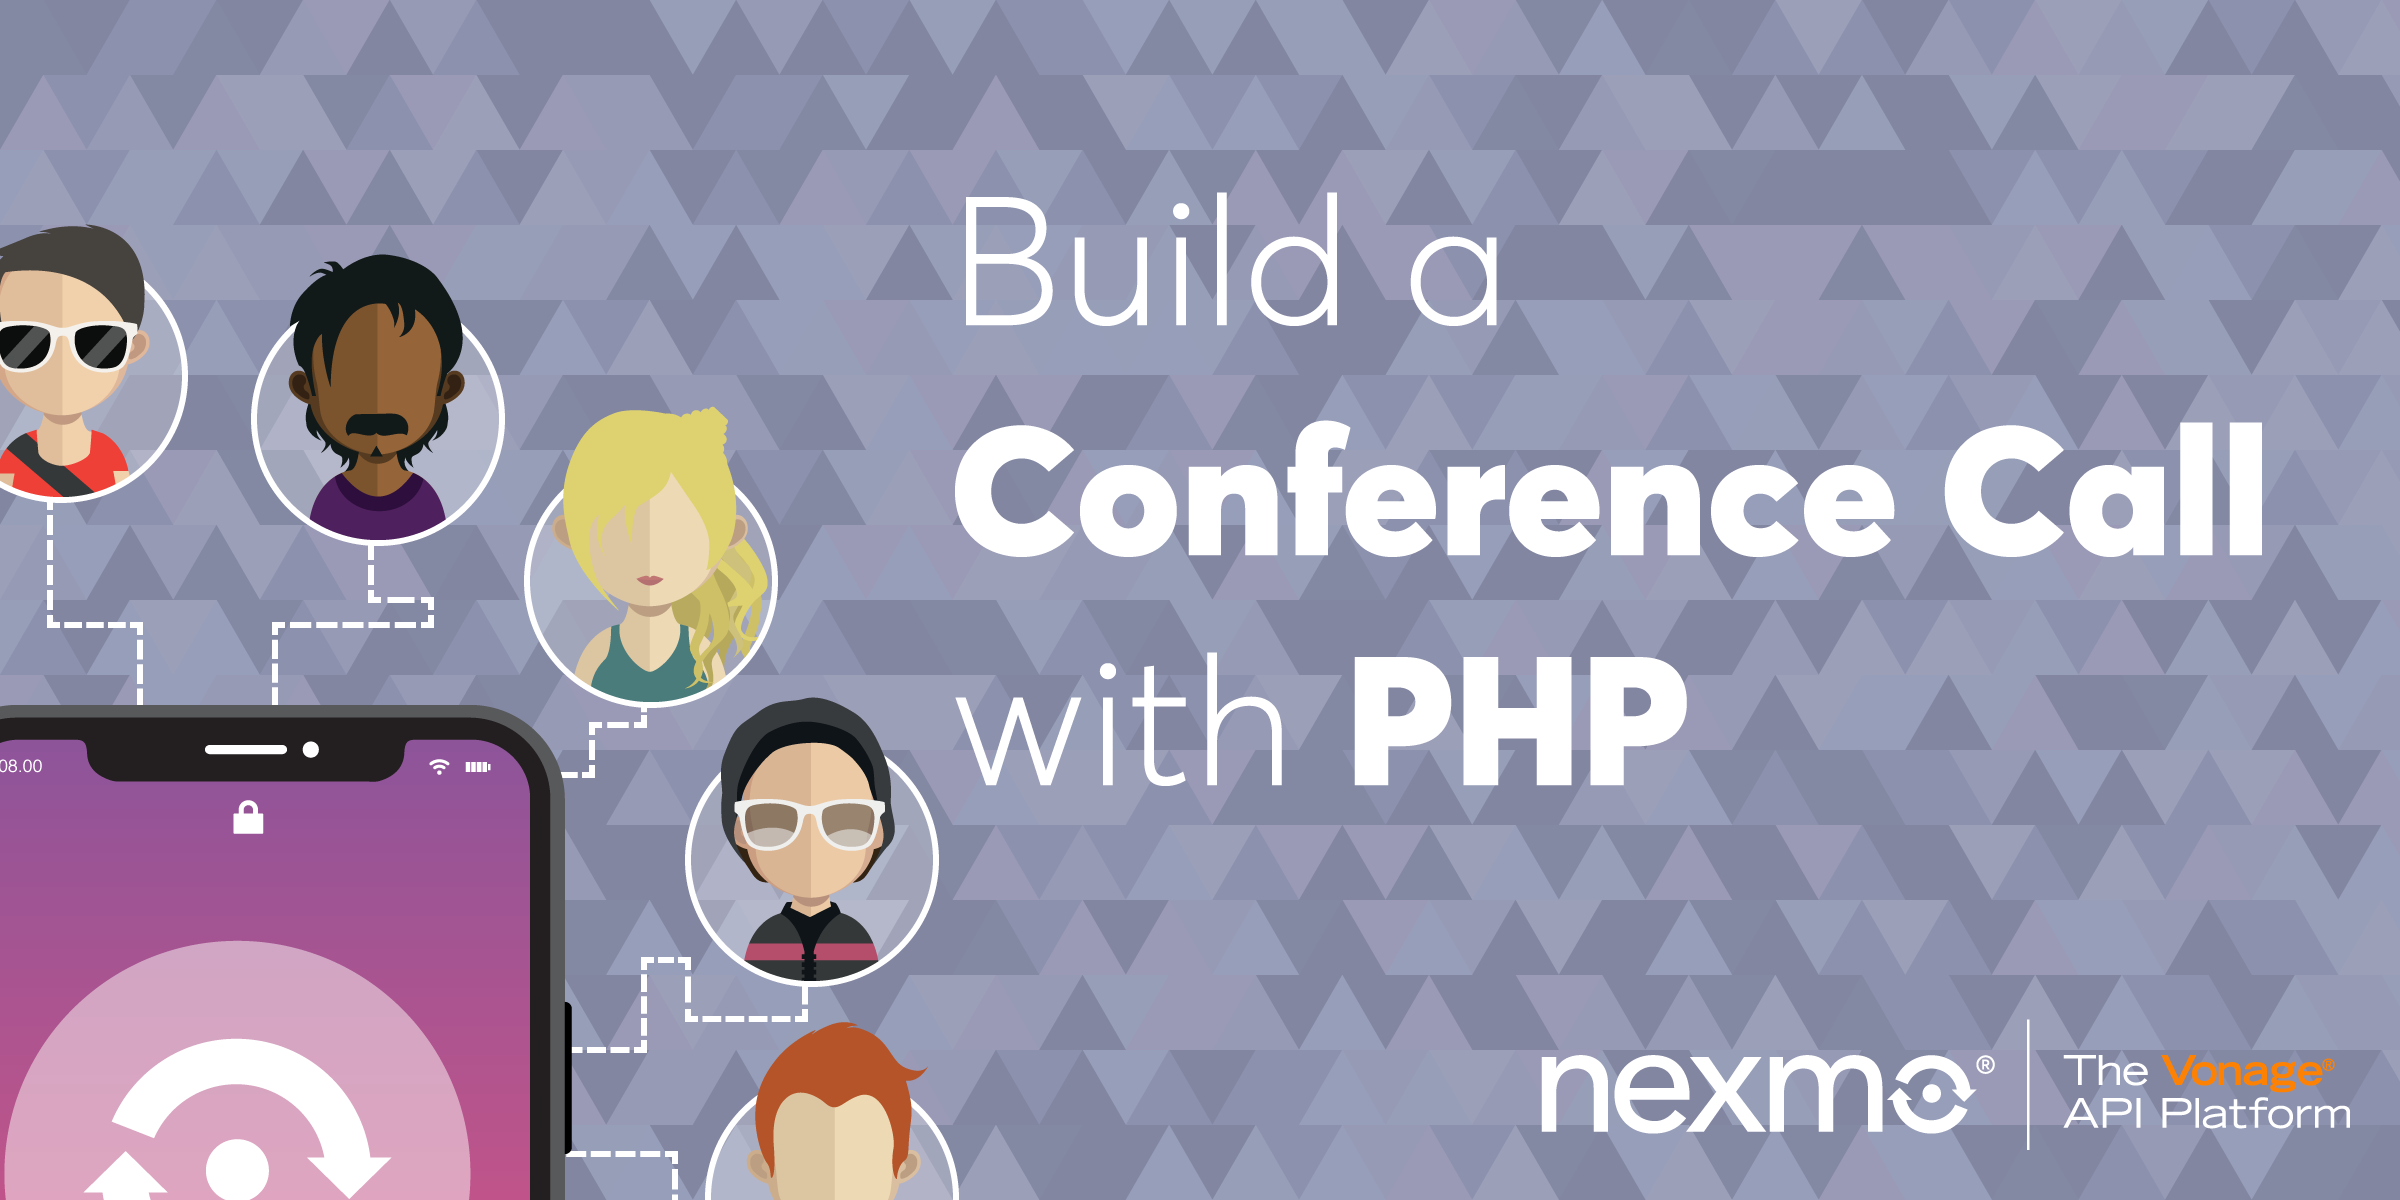 Build a Conference Call with PHP